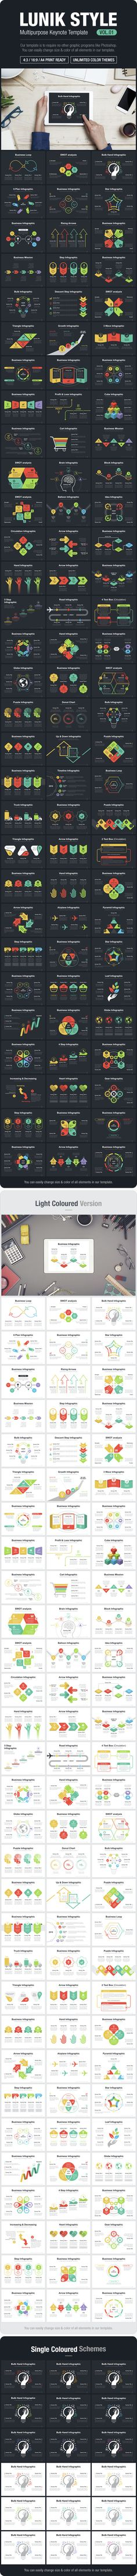 Buy Lunik Style - Multipurpose PowerPoint Template by lunik on GraphicRiver. 'LUNIK STYLE Multipurpose PowerPoint Template' is to require no other graphics programs like Photoshop. Business Presentation, Presentation Design, Presentation Templates, Presentation Slides, Flow Chart Design, Diagram Design, Business Powerpoint Templates, Keynote Template, Powerpoint Designs